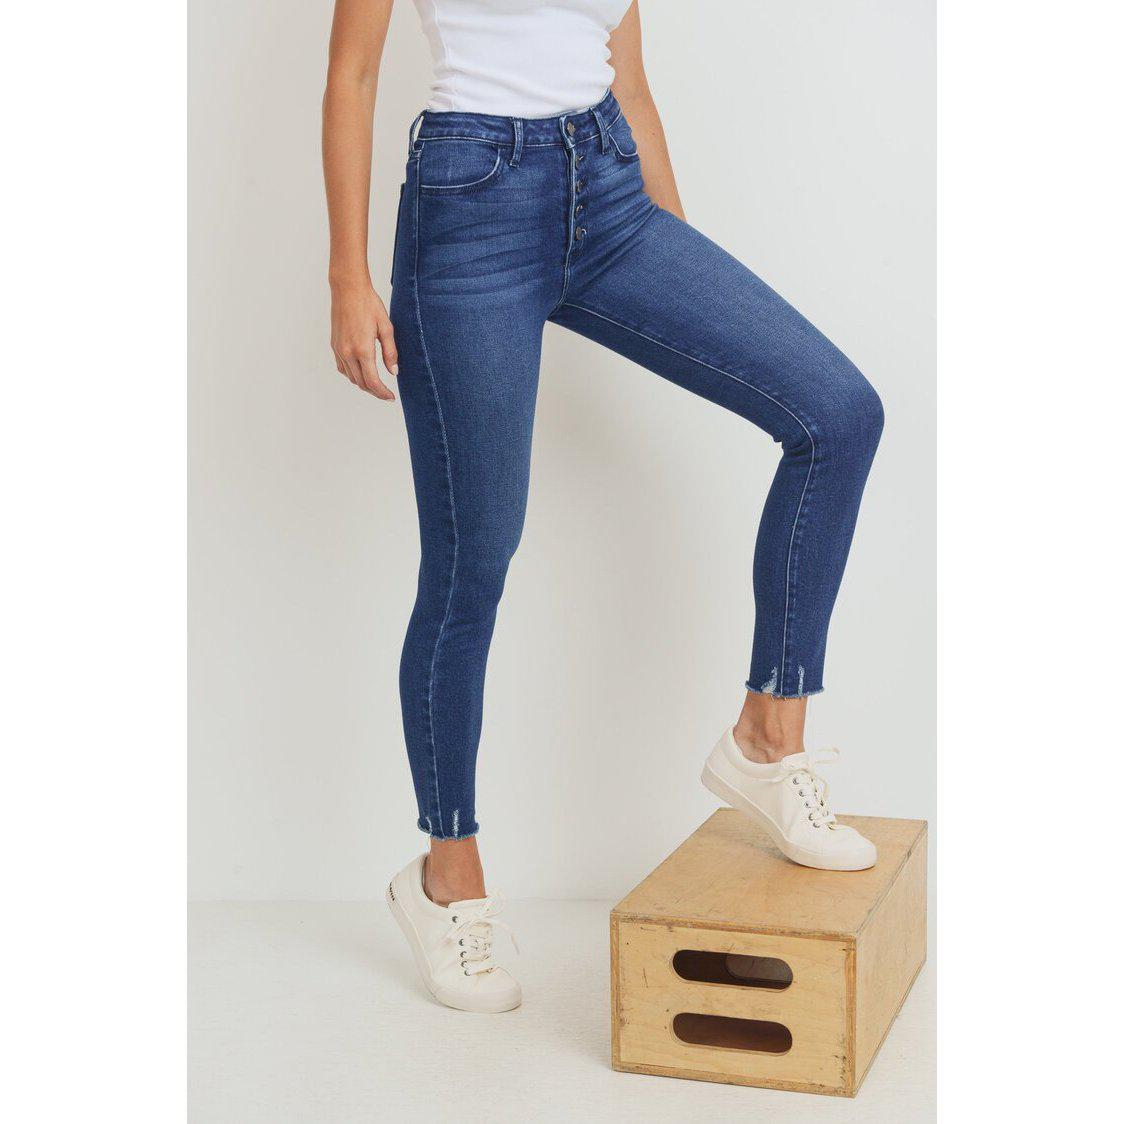 The Apple Picking Skinny-Jeans-Just Black Denim-Zingy Boutique